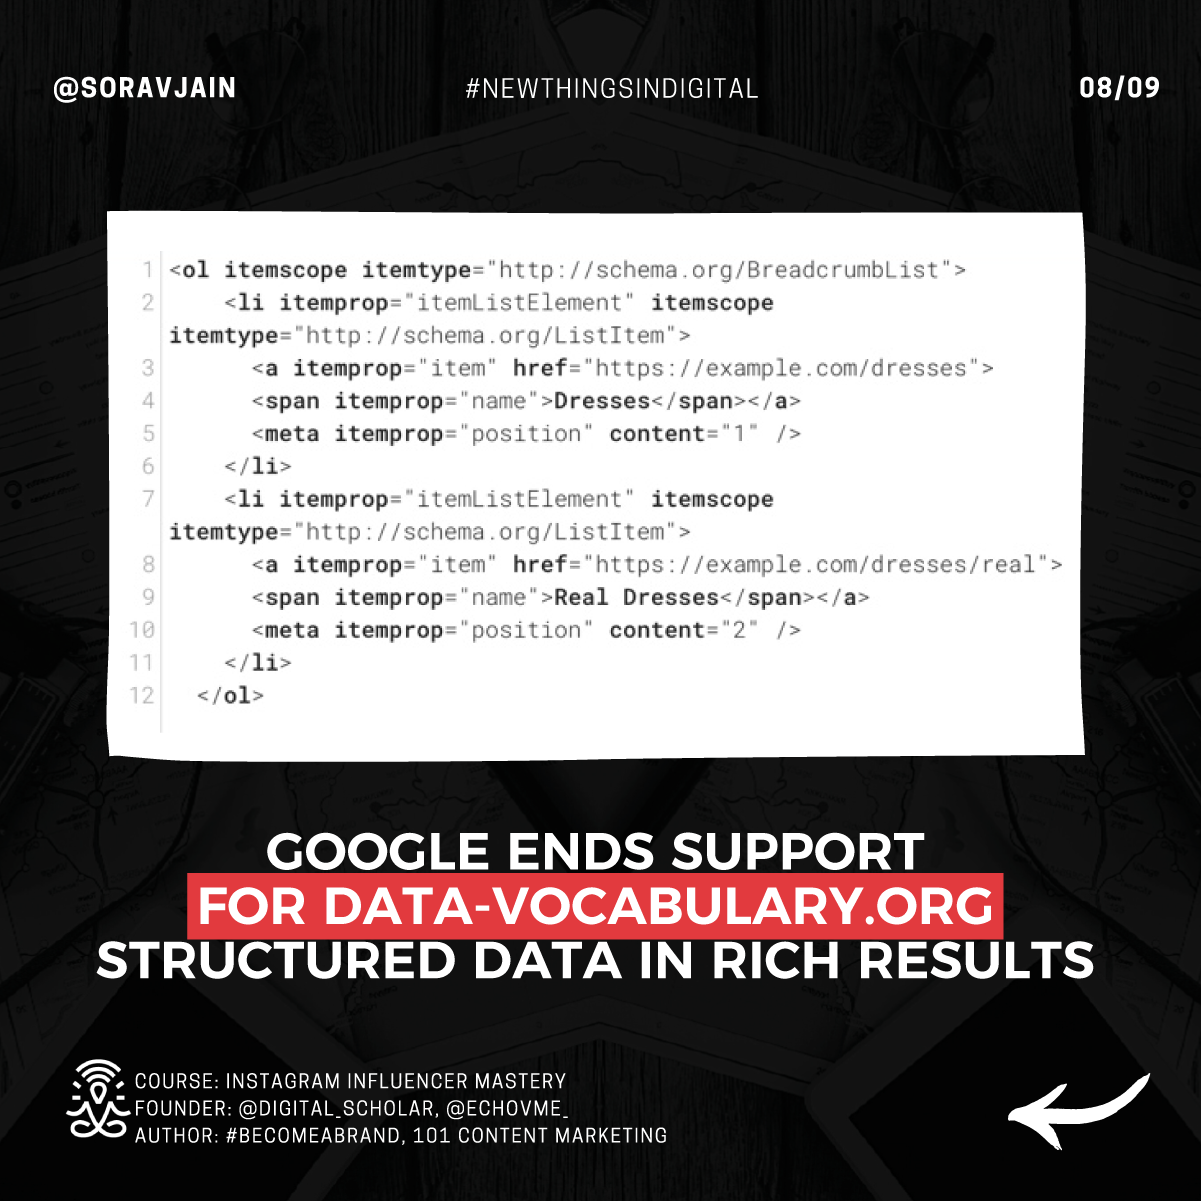 Google ends support for data-vocabulary.org structured data in rich results